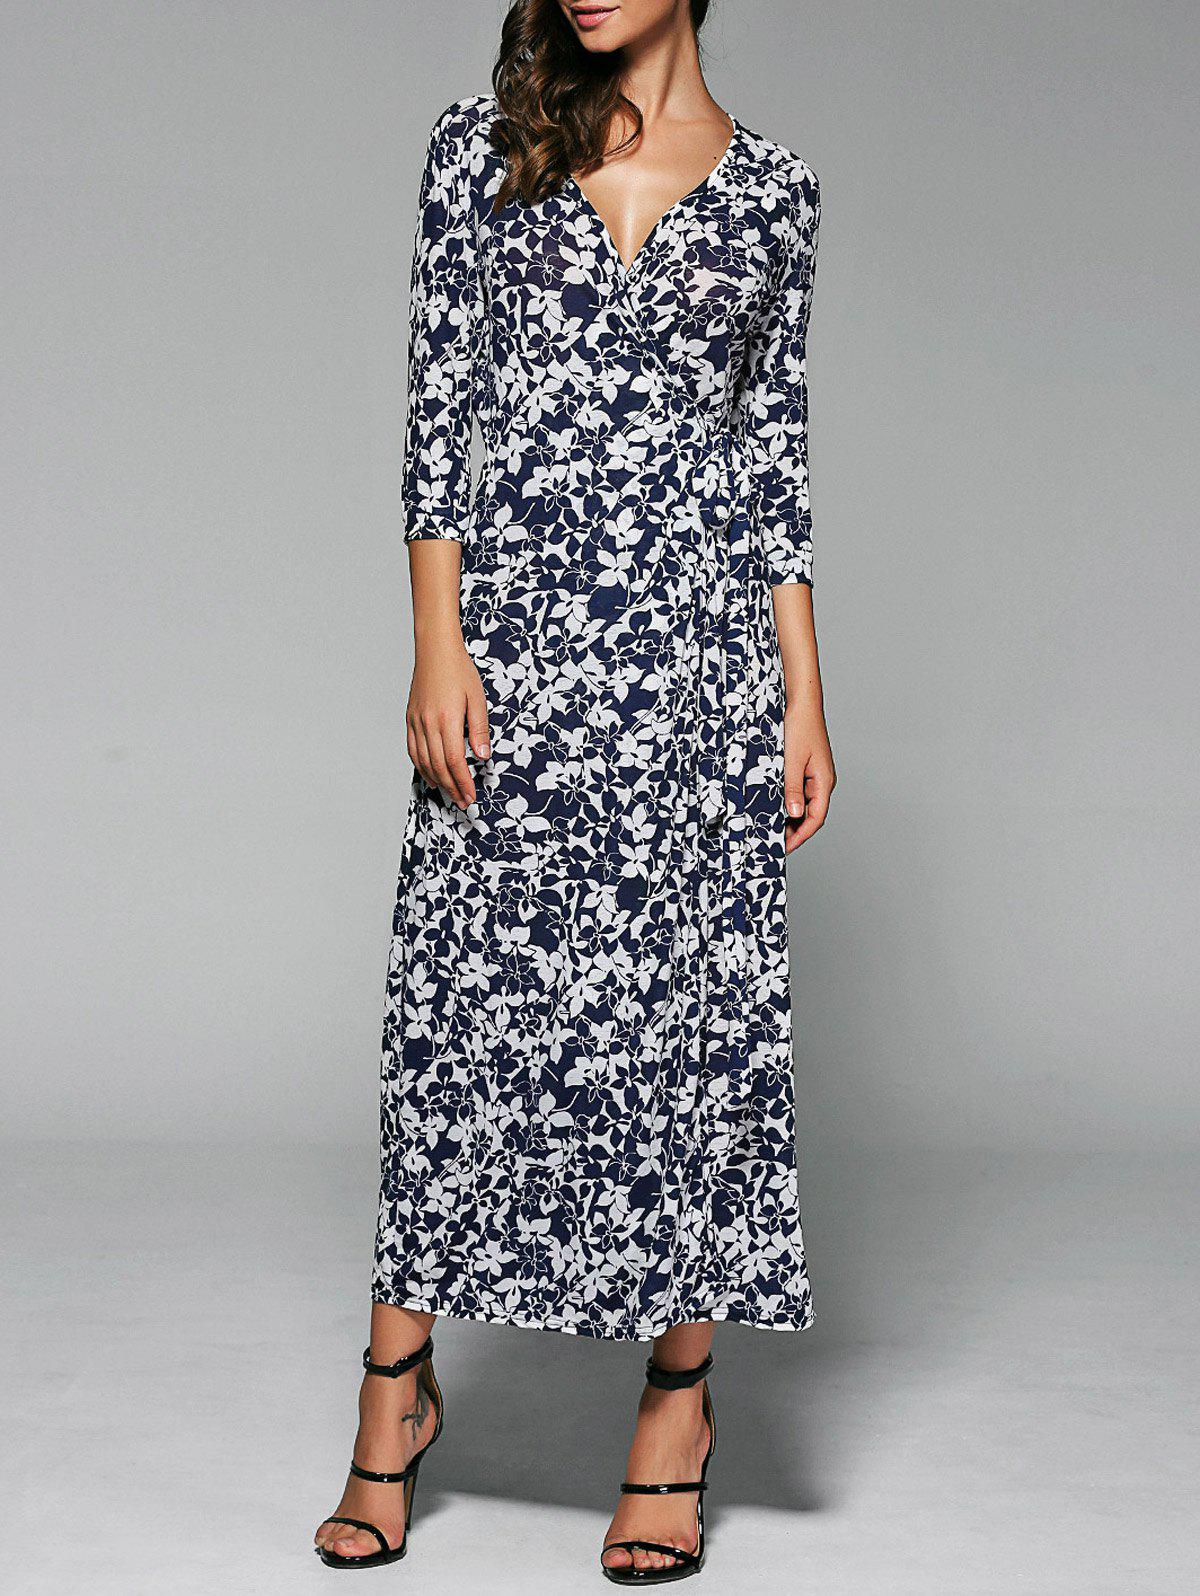 Floral Print Wrap Front Slit Maxi Summer Dress - PURPLISH BLUE L